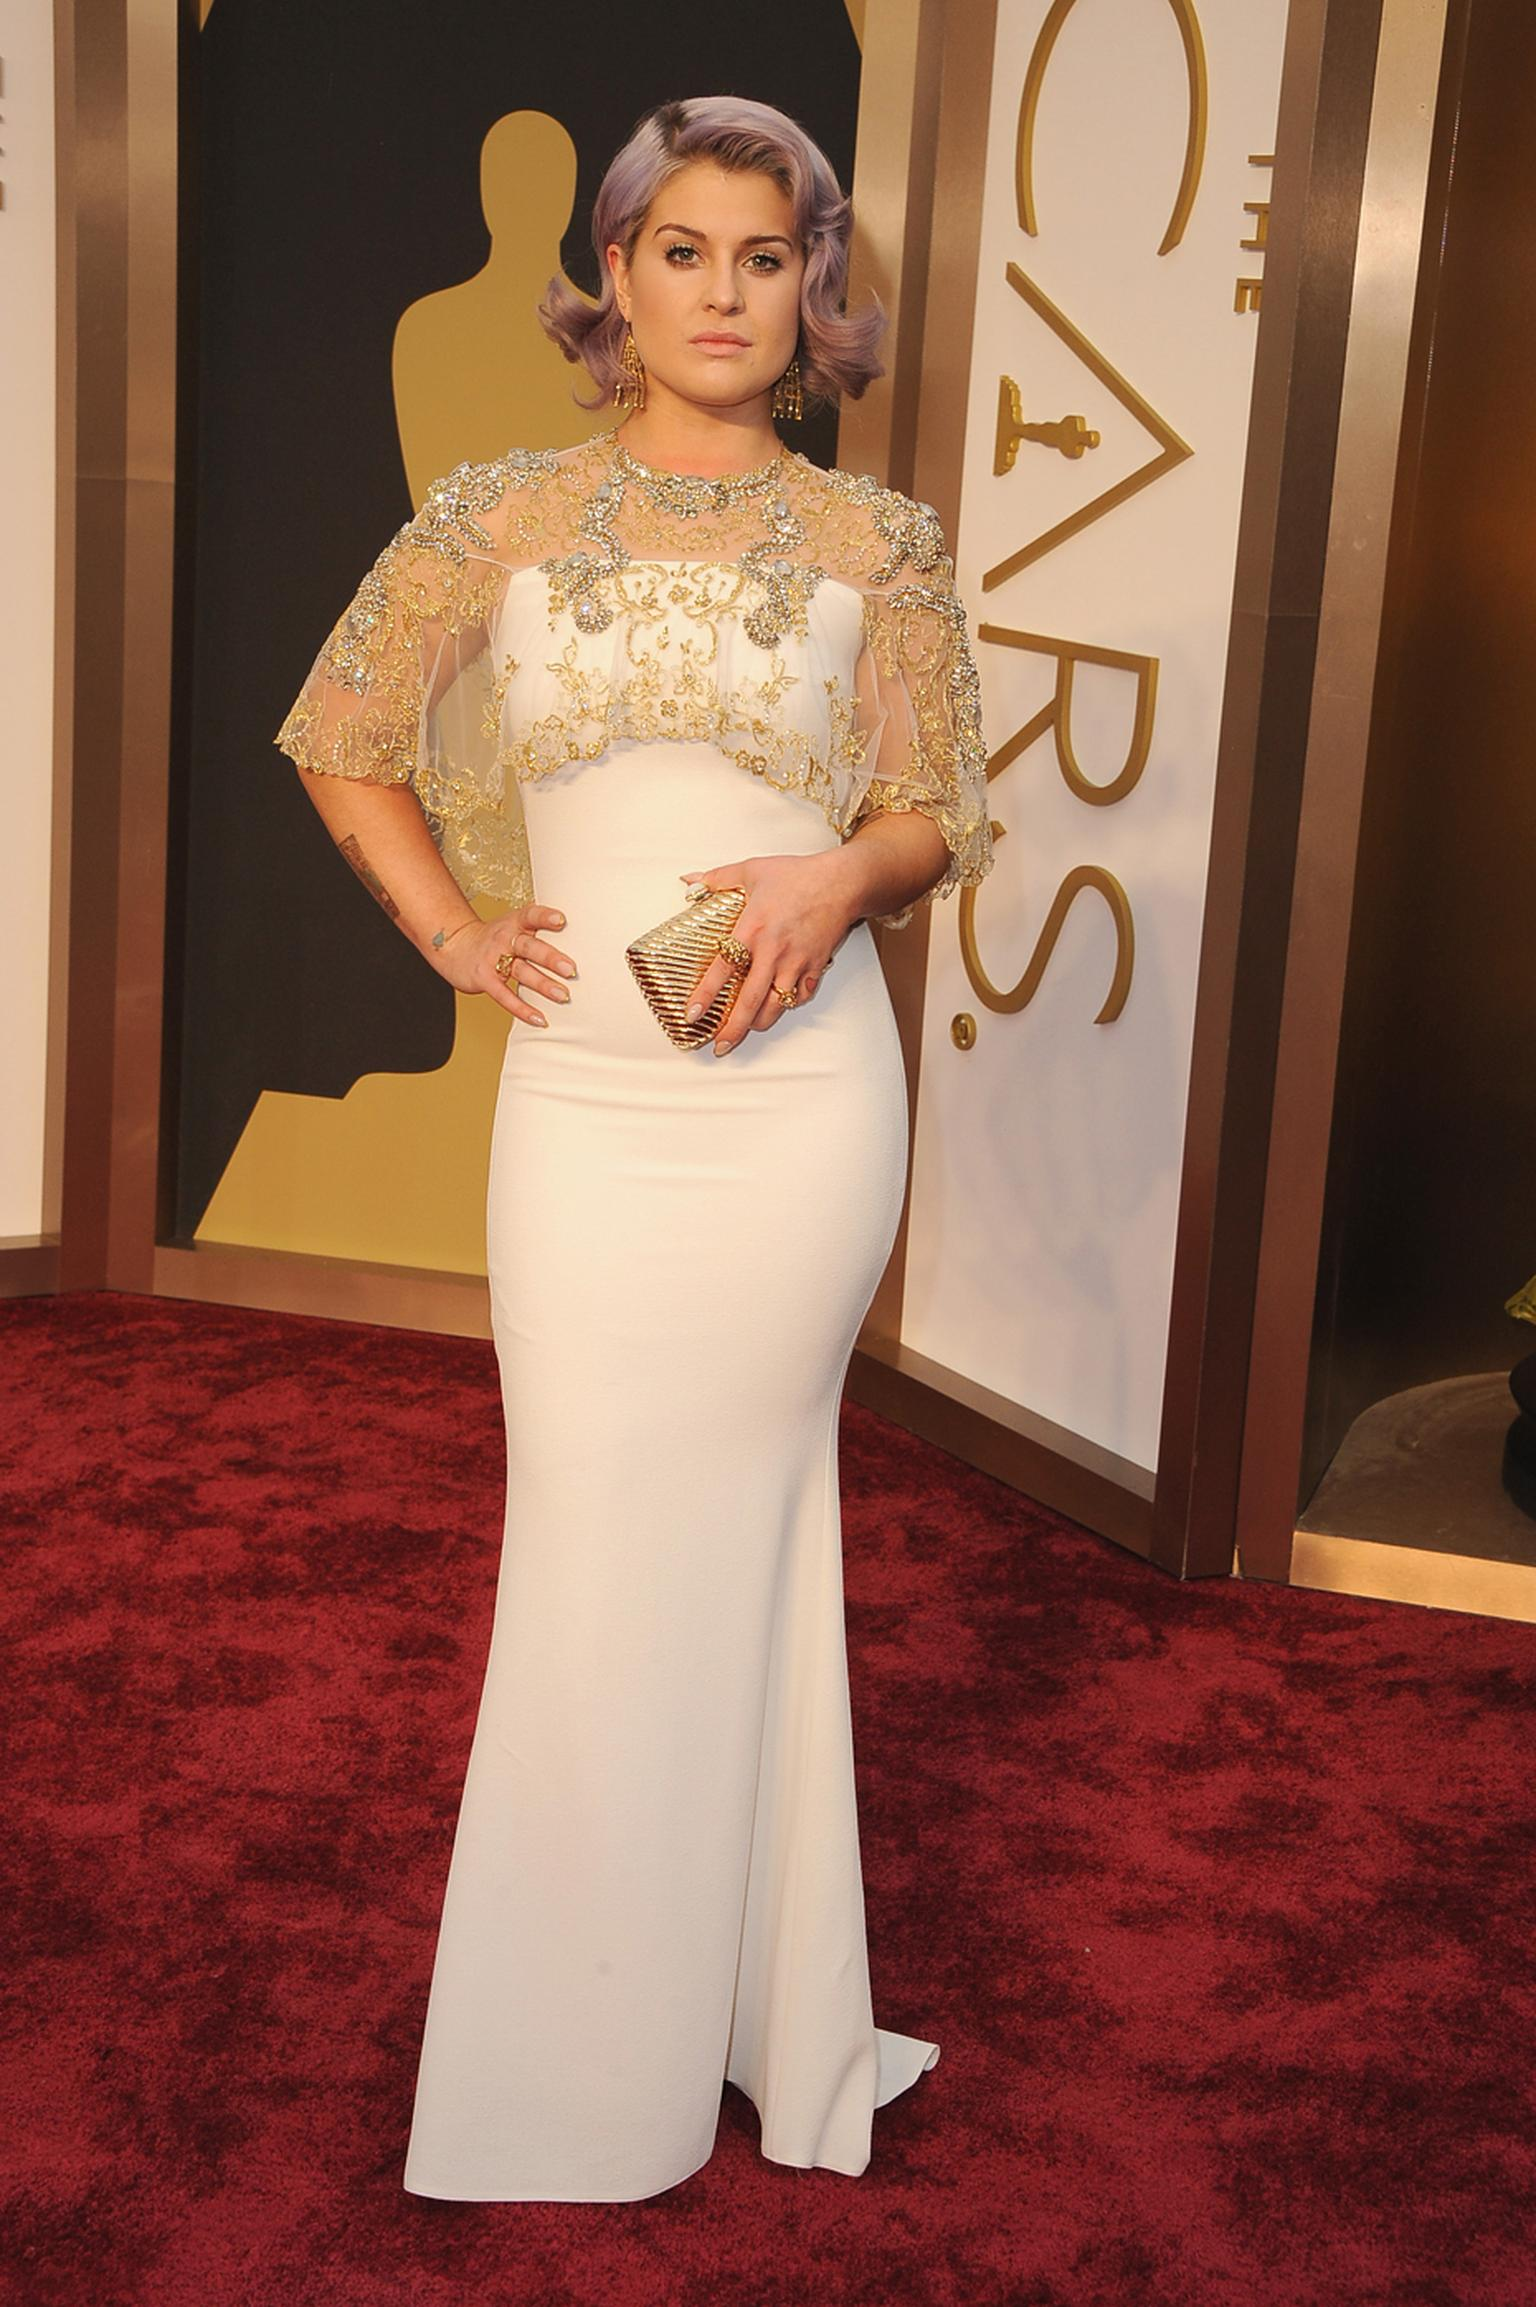 Kelly Osbourne wears an elegant Badgley Mischka dress with Solange Azagury-Partridge jewels